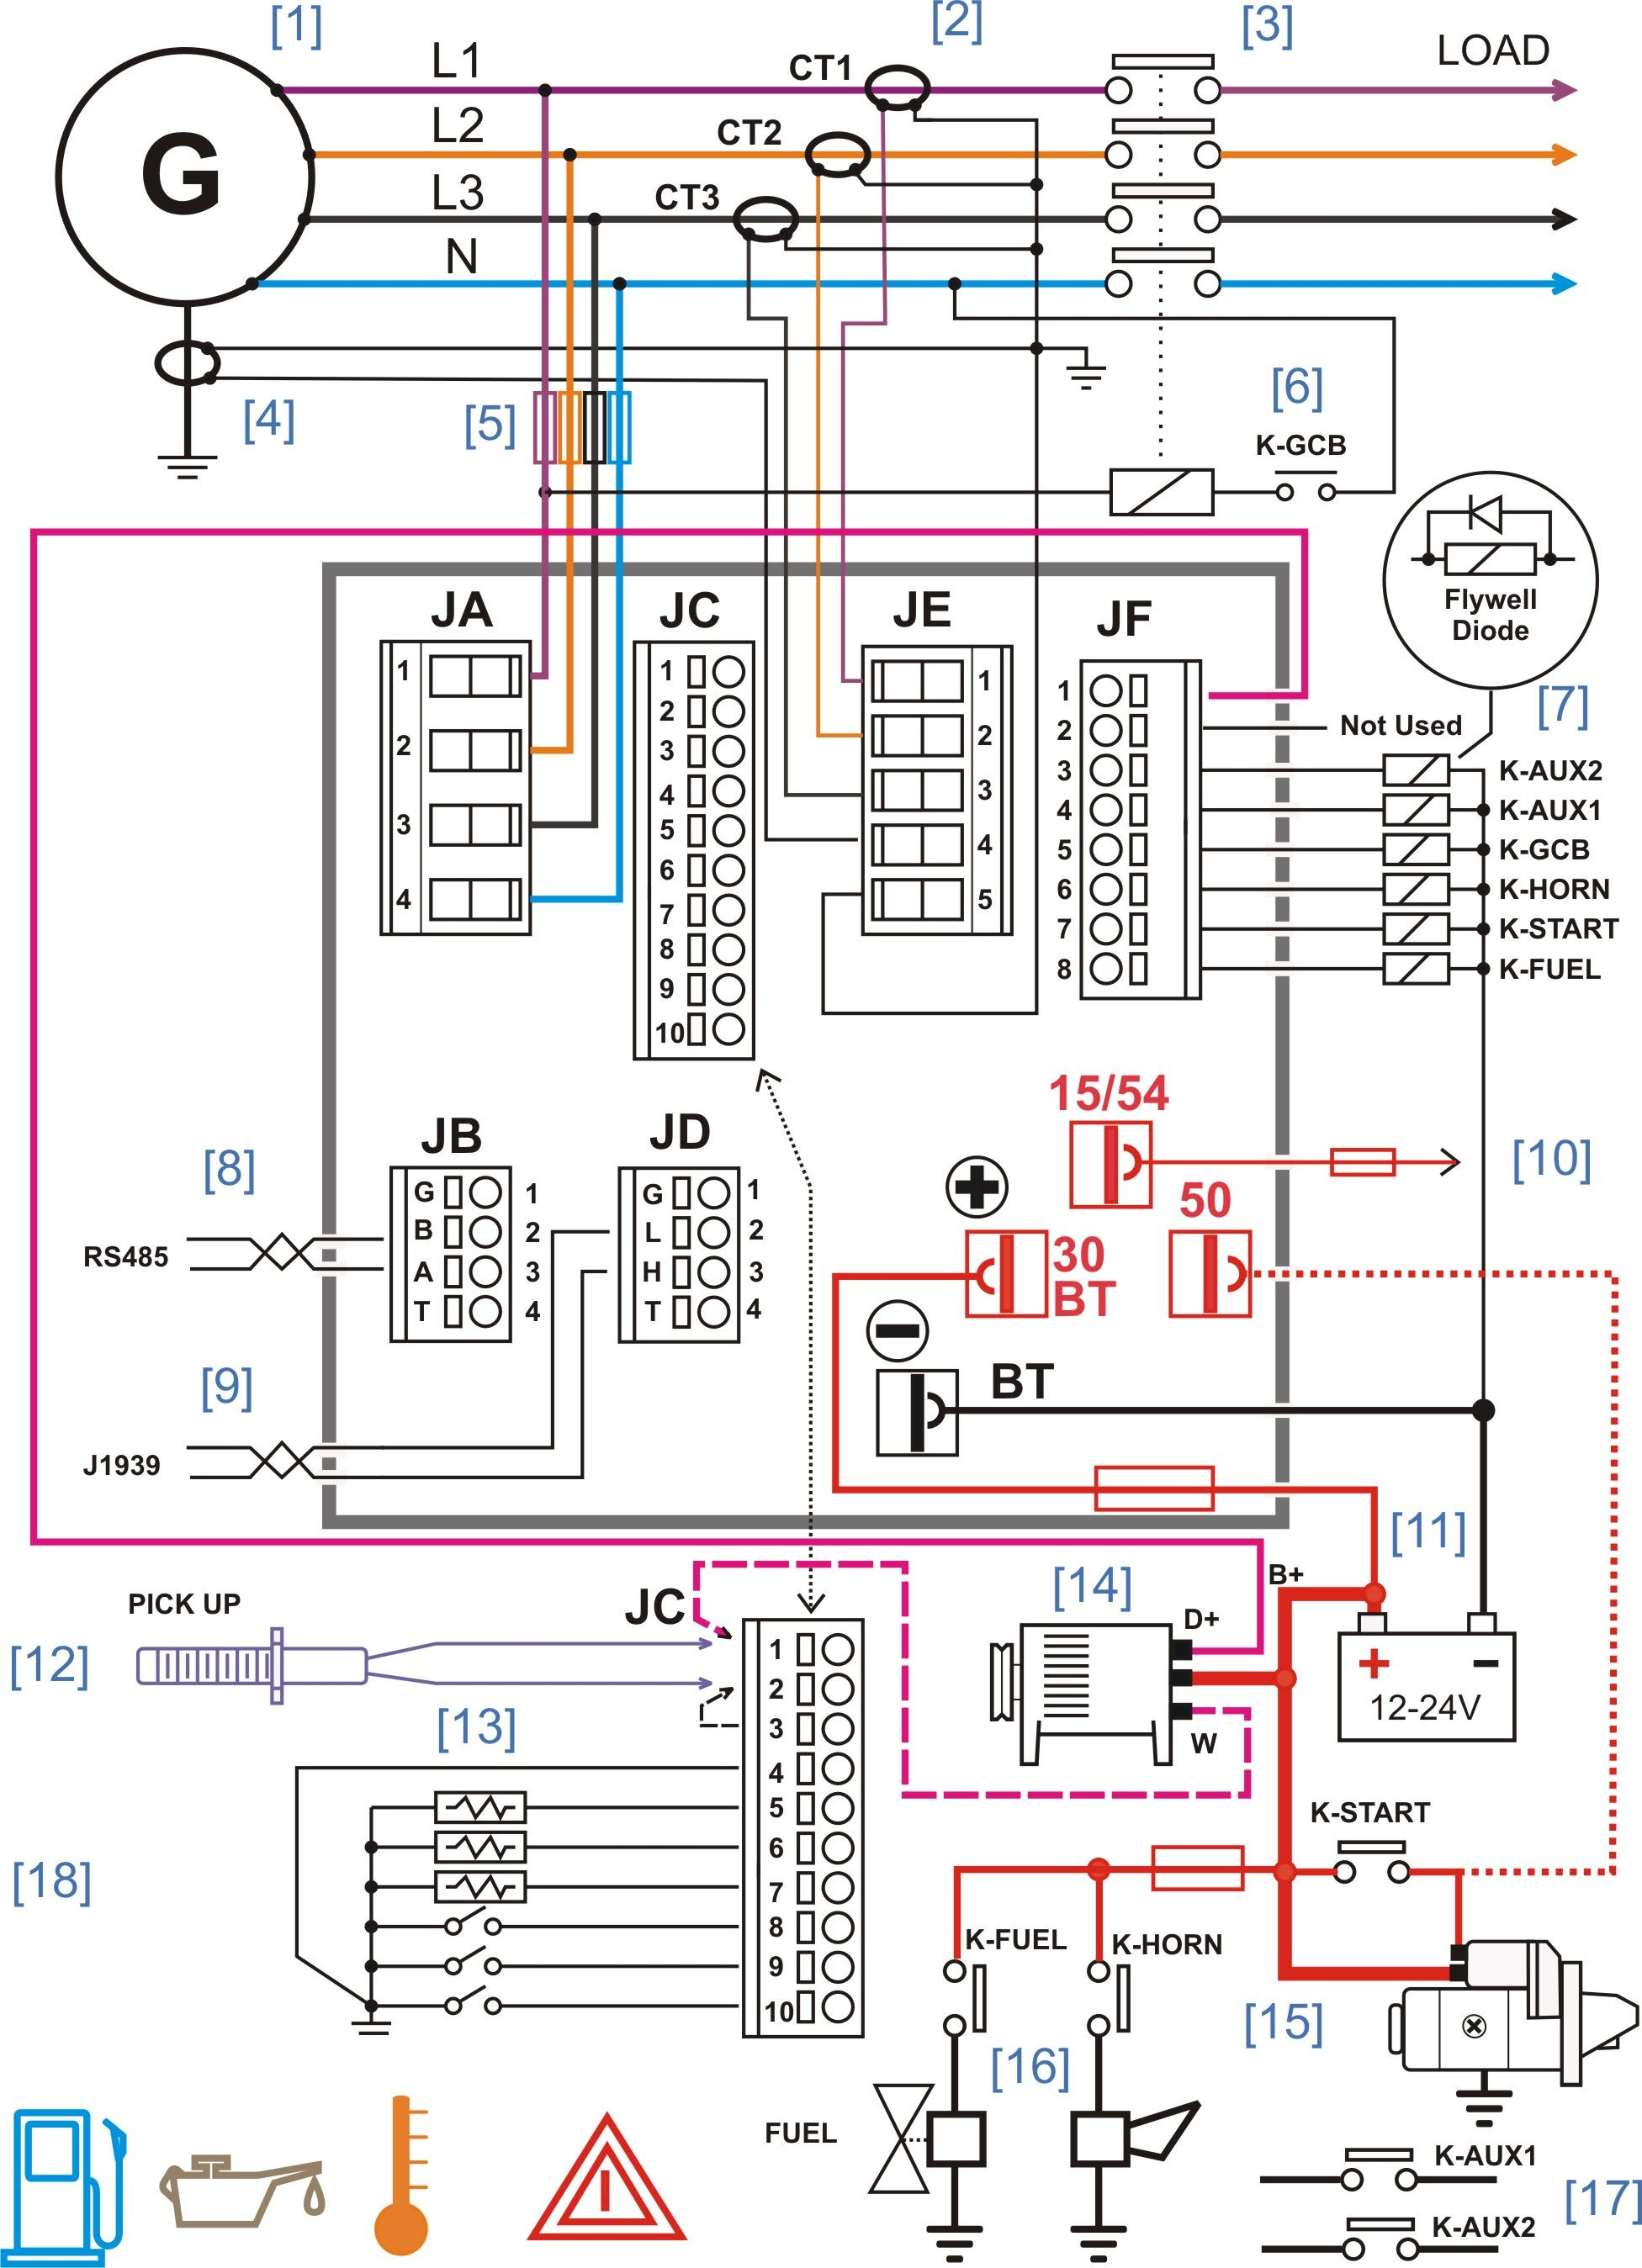 Electrical Ladder Diagram Software Vw Eos Parts Control Panel Wiring All Data Diesel Generator Generators Lighting